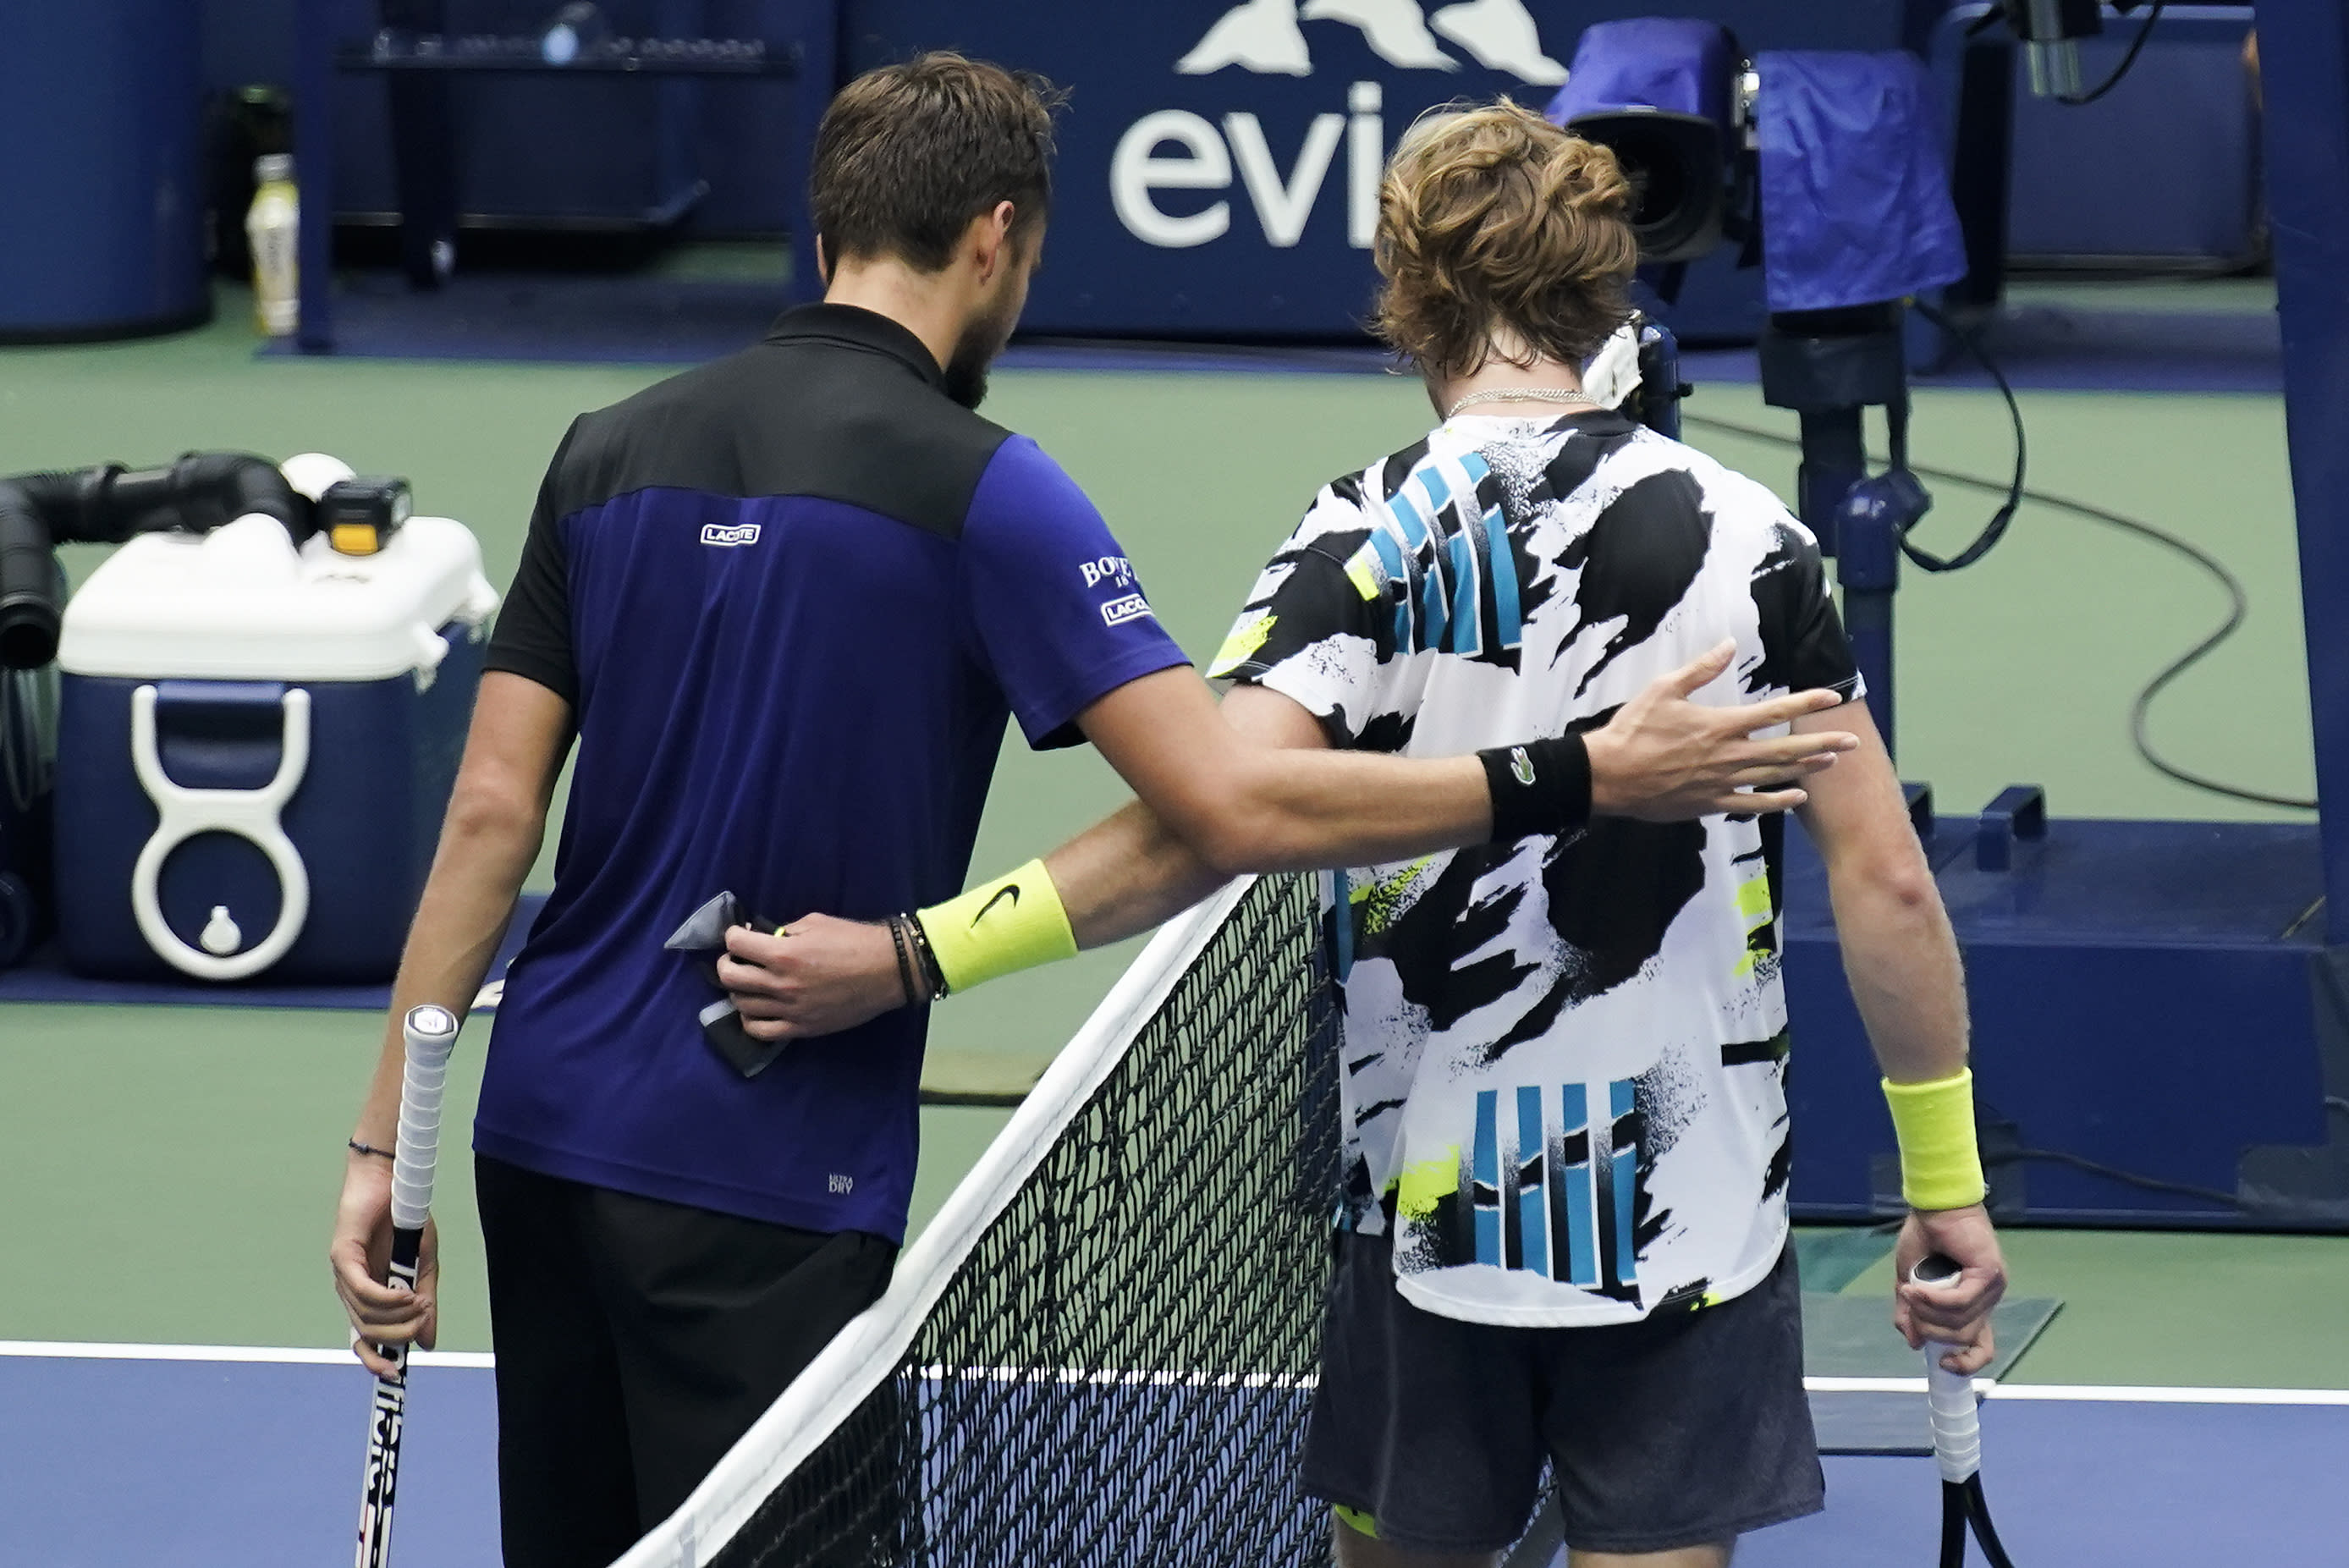 Daniil Medvedev, of Russia, left, greets Andrey Rublev, of Russia, at the net after winning their quarterfinal match of the US Open tennis championships, Wednesday, Sept. 9, 2020, in New York. (AP Photo/Seth Wenig)